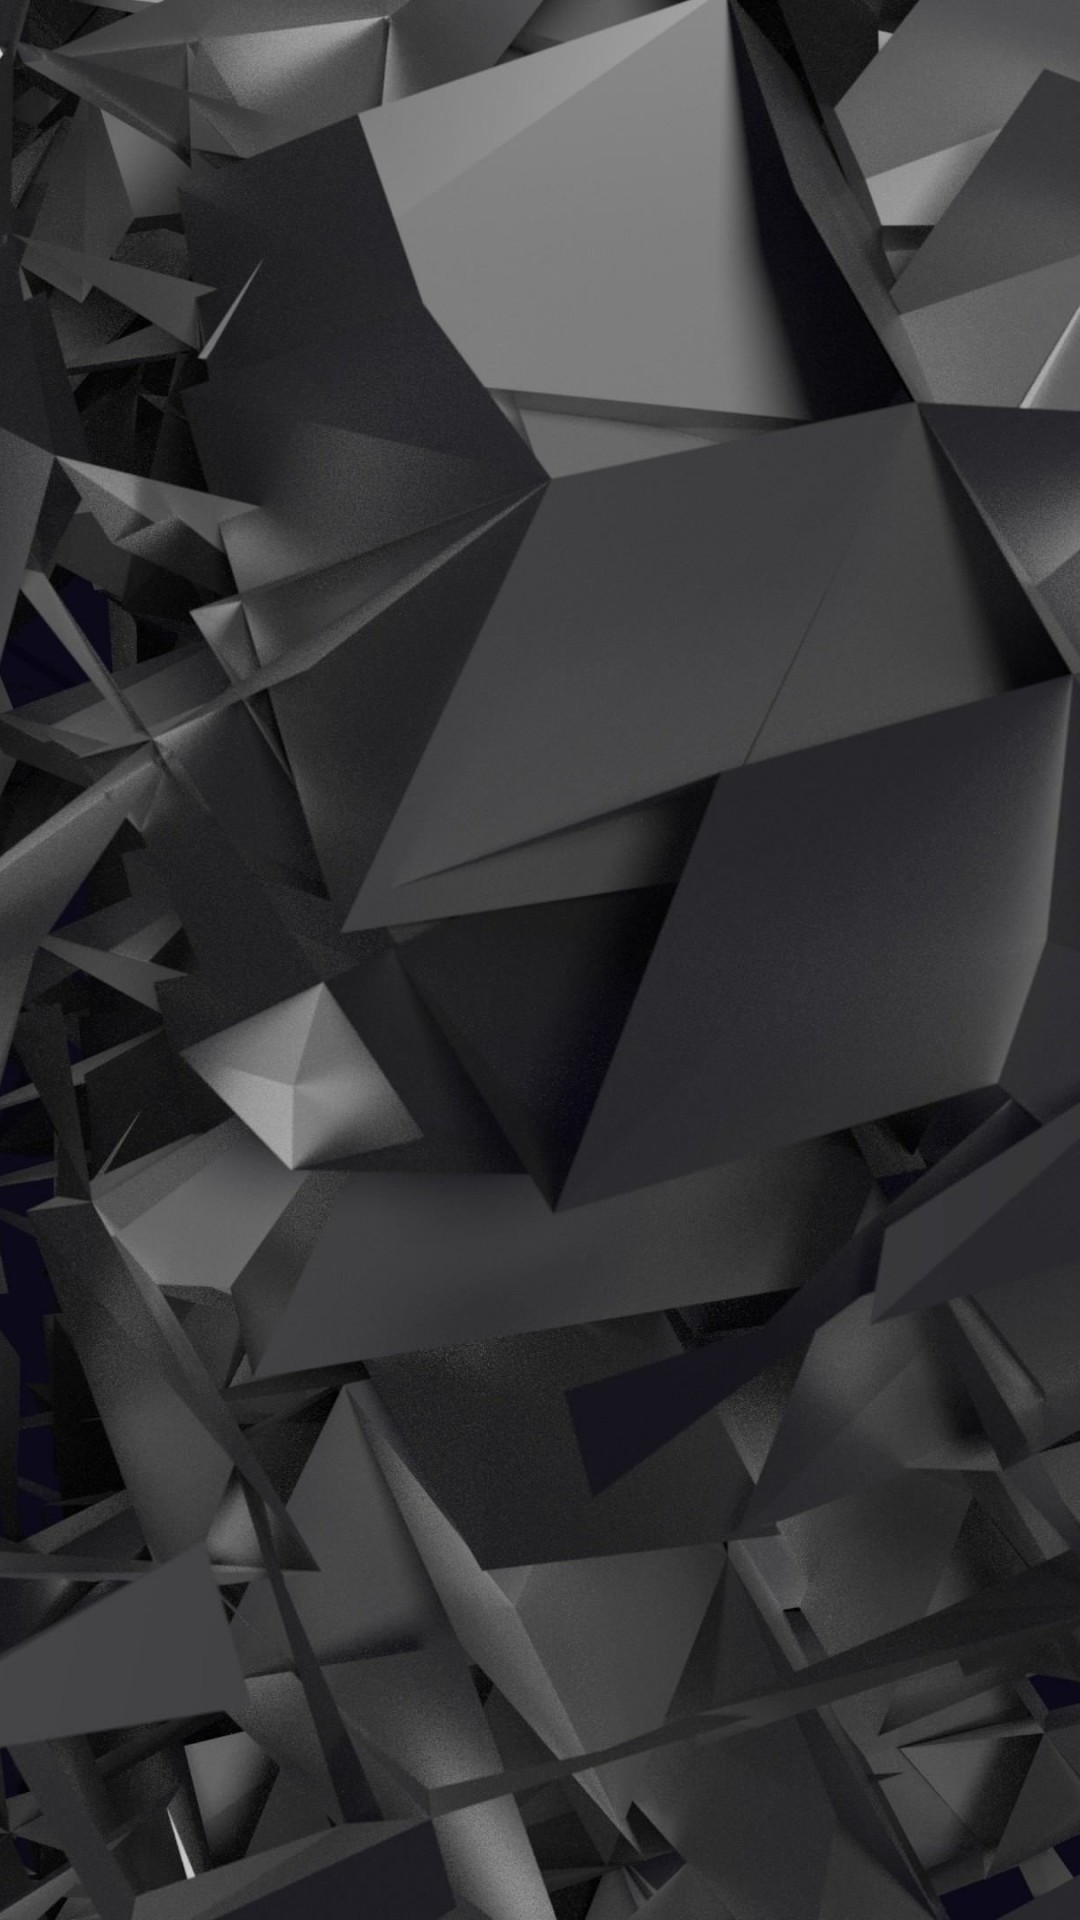 3D Geometry Wallpaper for SAMSUNG Galaxy Note 3